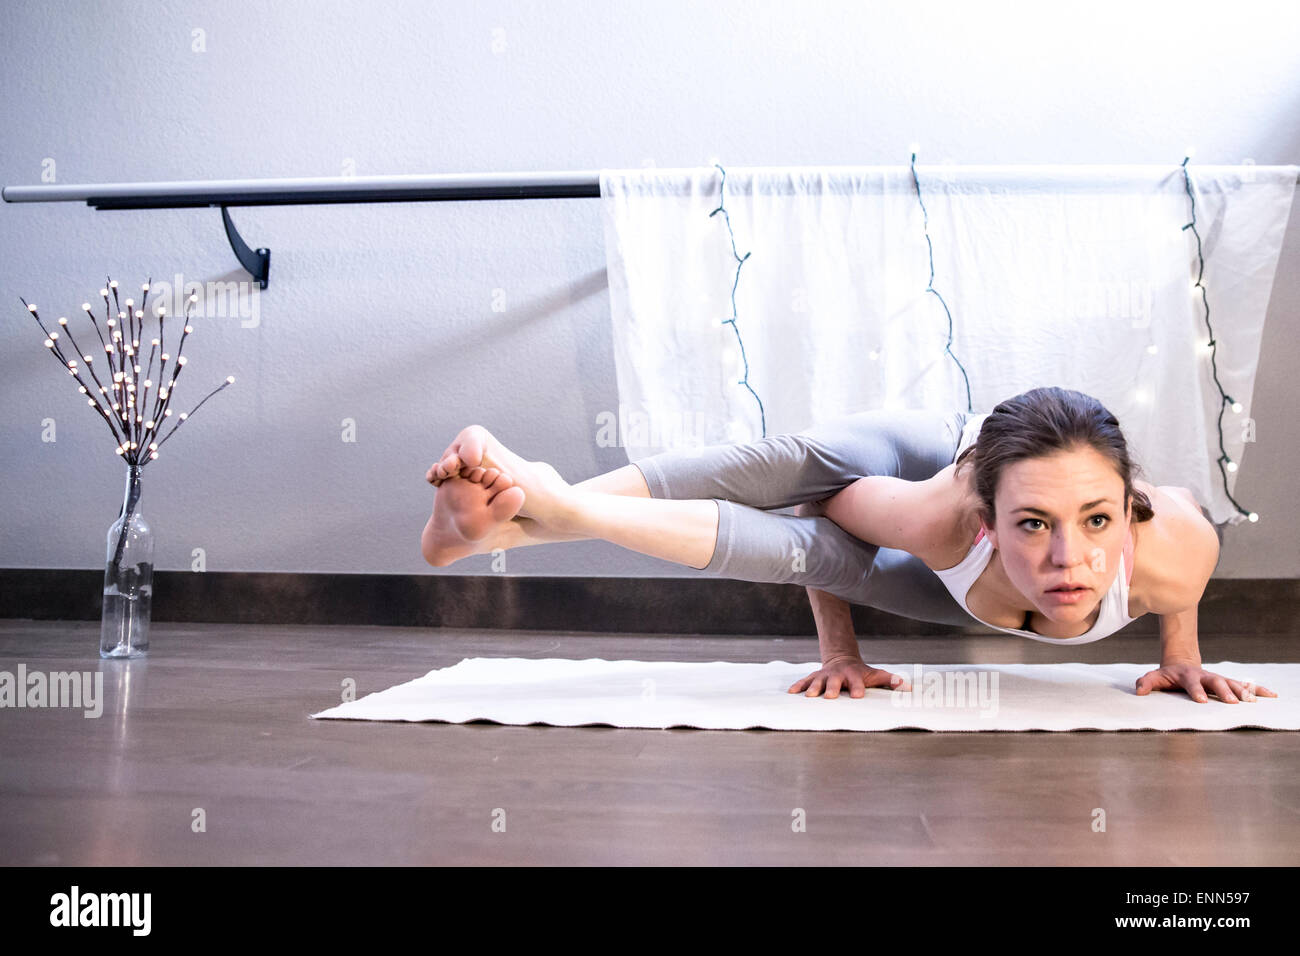 Strong Female holds yoga arm balance - Stock Image